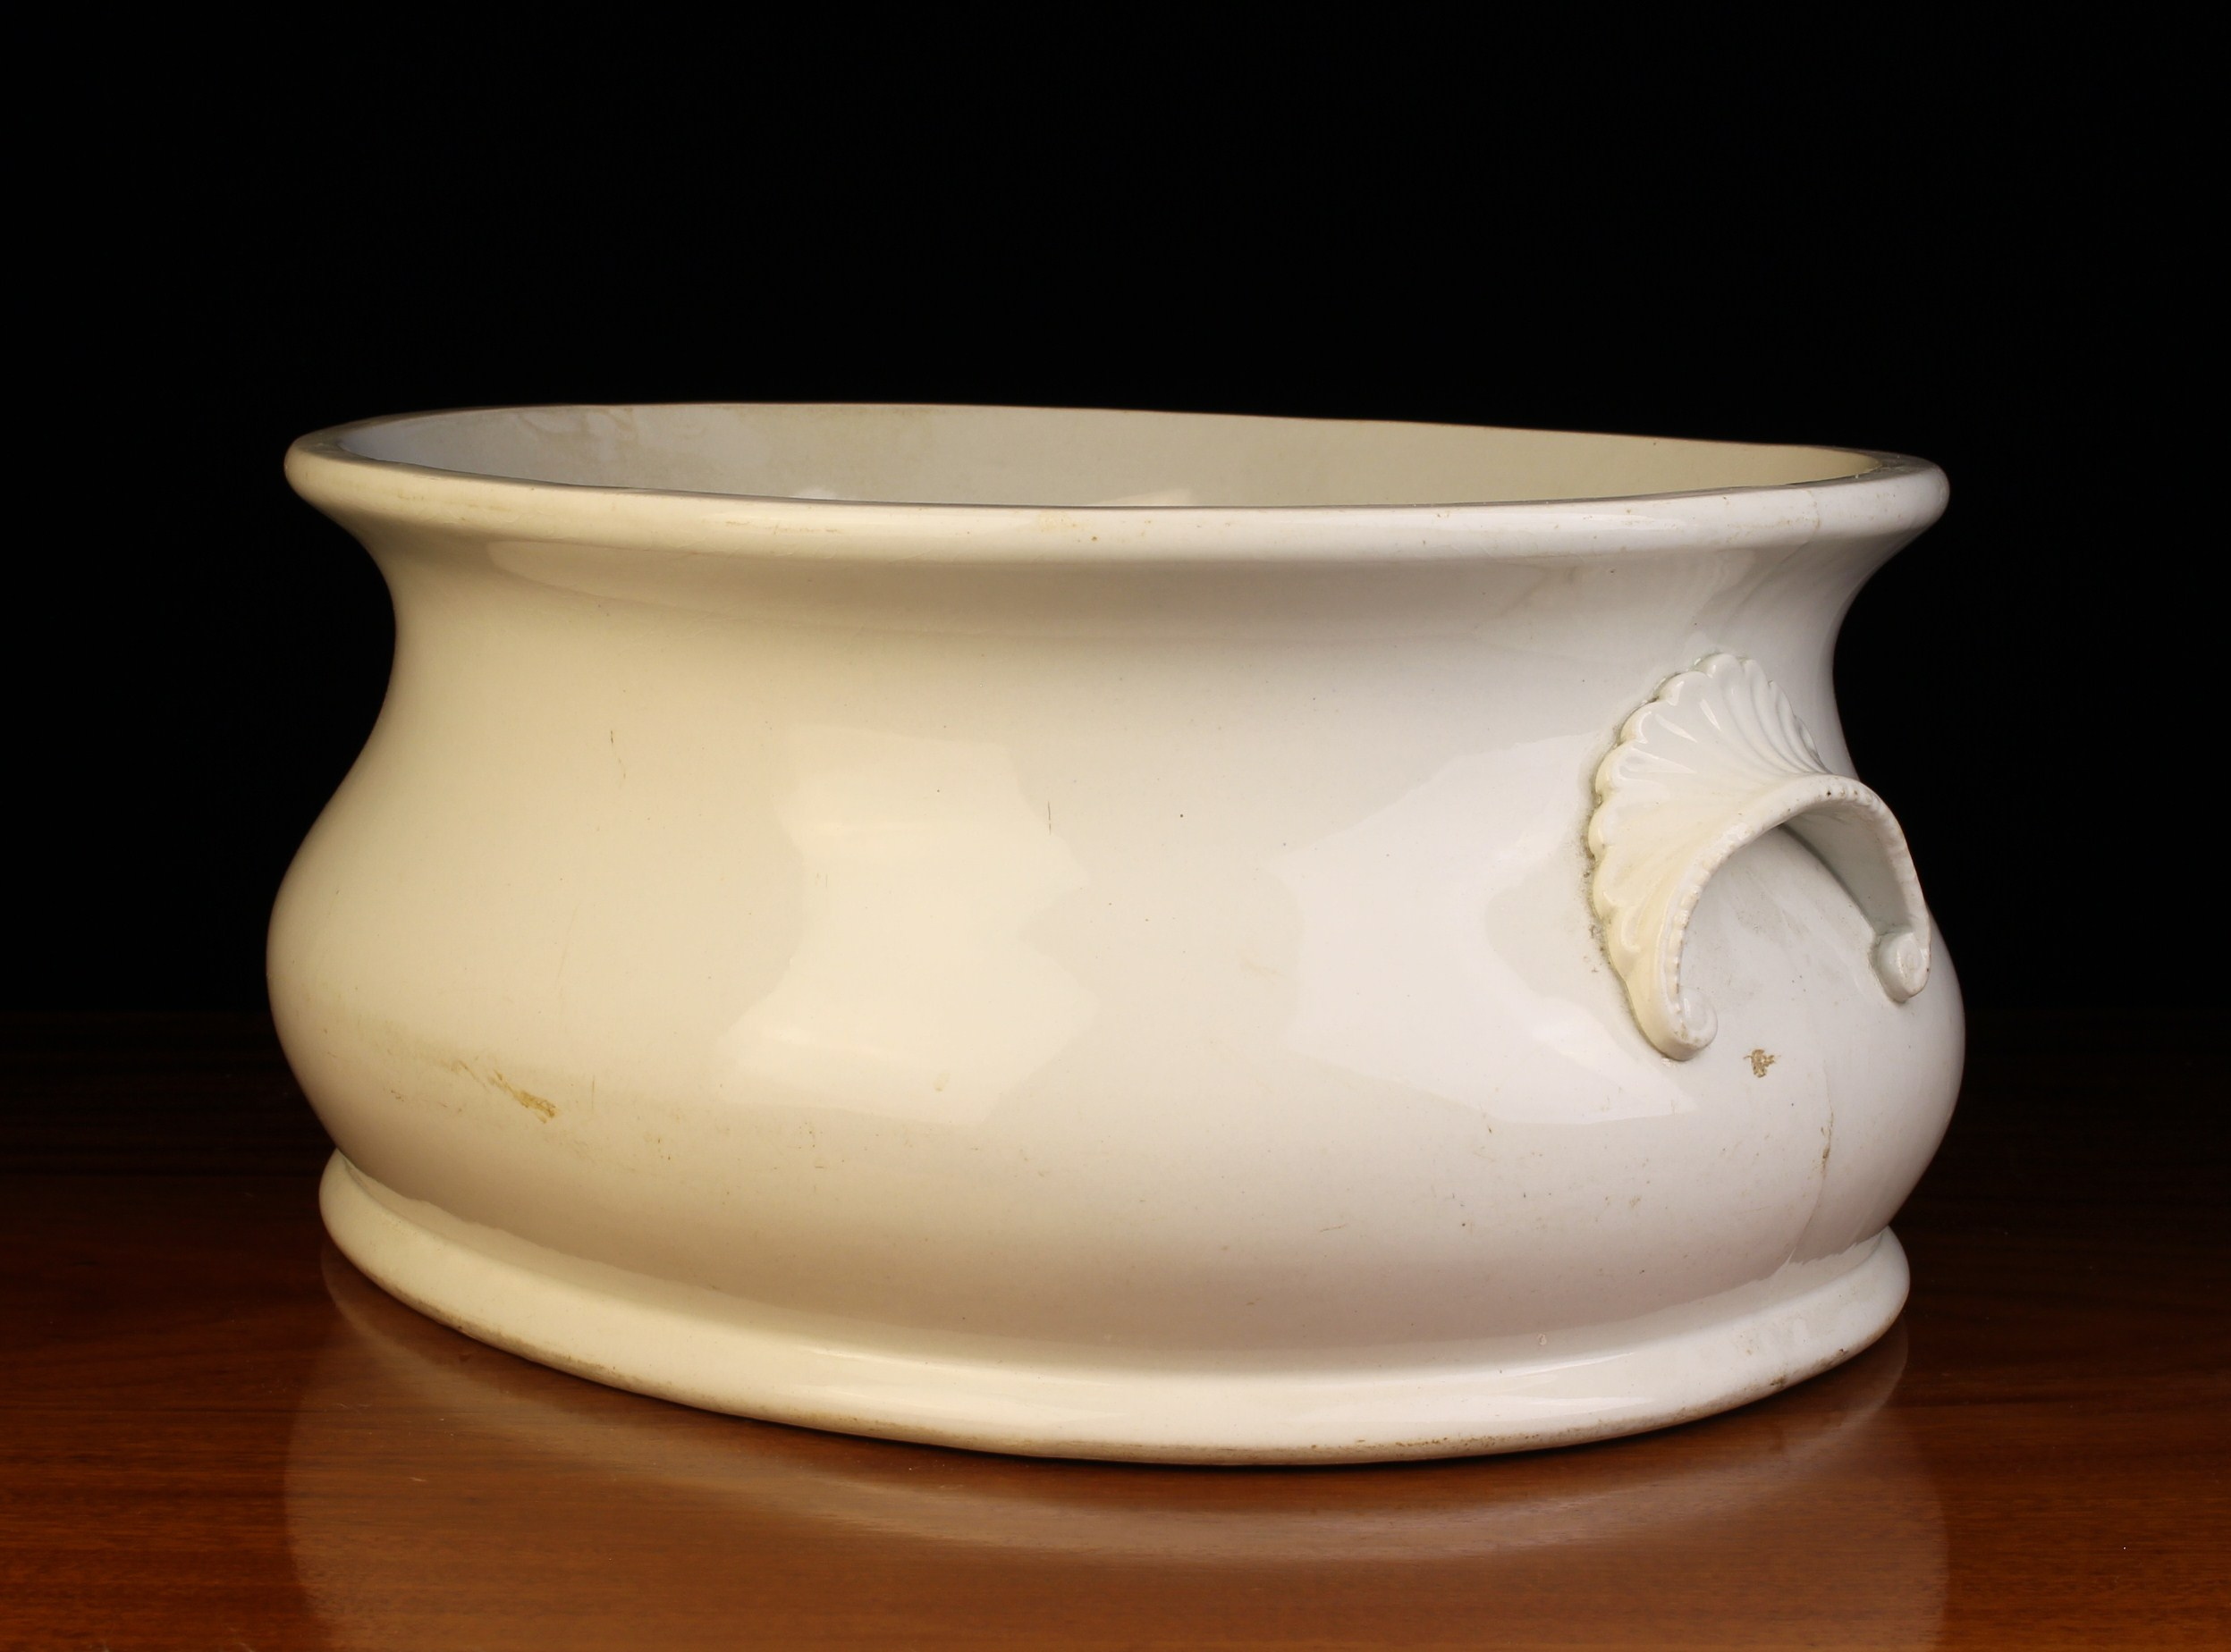 A 19th Century White Glazed Belleek Pottery Foot Bath with decorative moulded lip handles either - Image 2 of 3